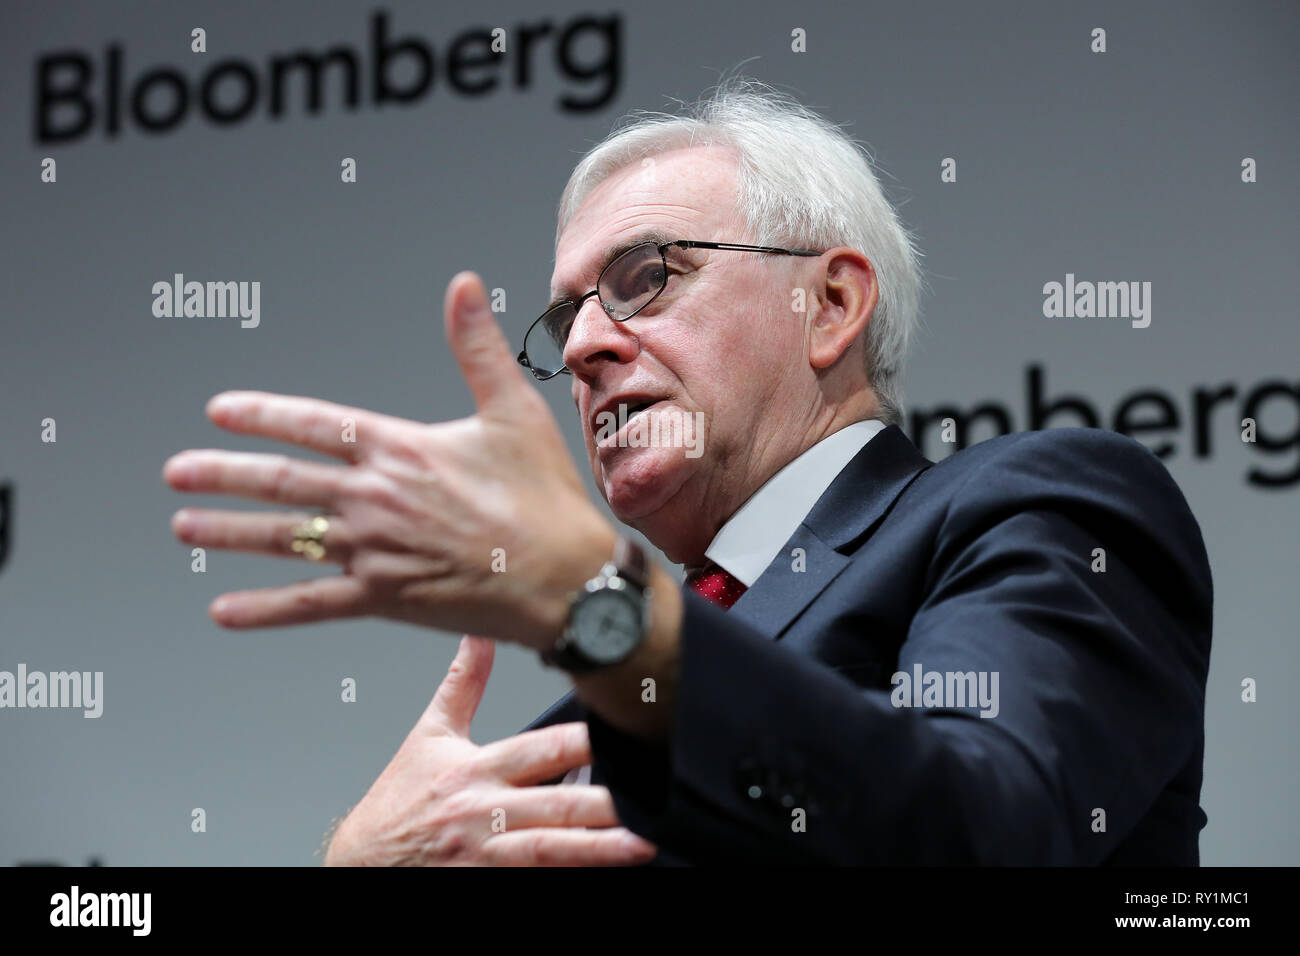 Shadow Chancellor John McDonnell MP is seen attending the business leaders' event as a guest speaker at Bloomberg Headquarters in London ahead of Chancellor Philip Hammond's Spring Statement later this week. - Stock Image